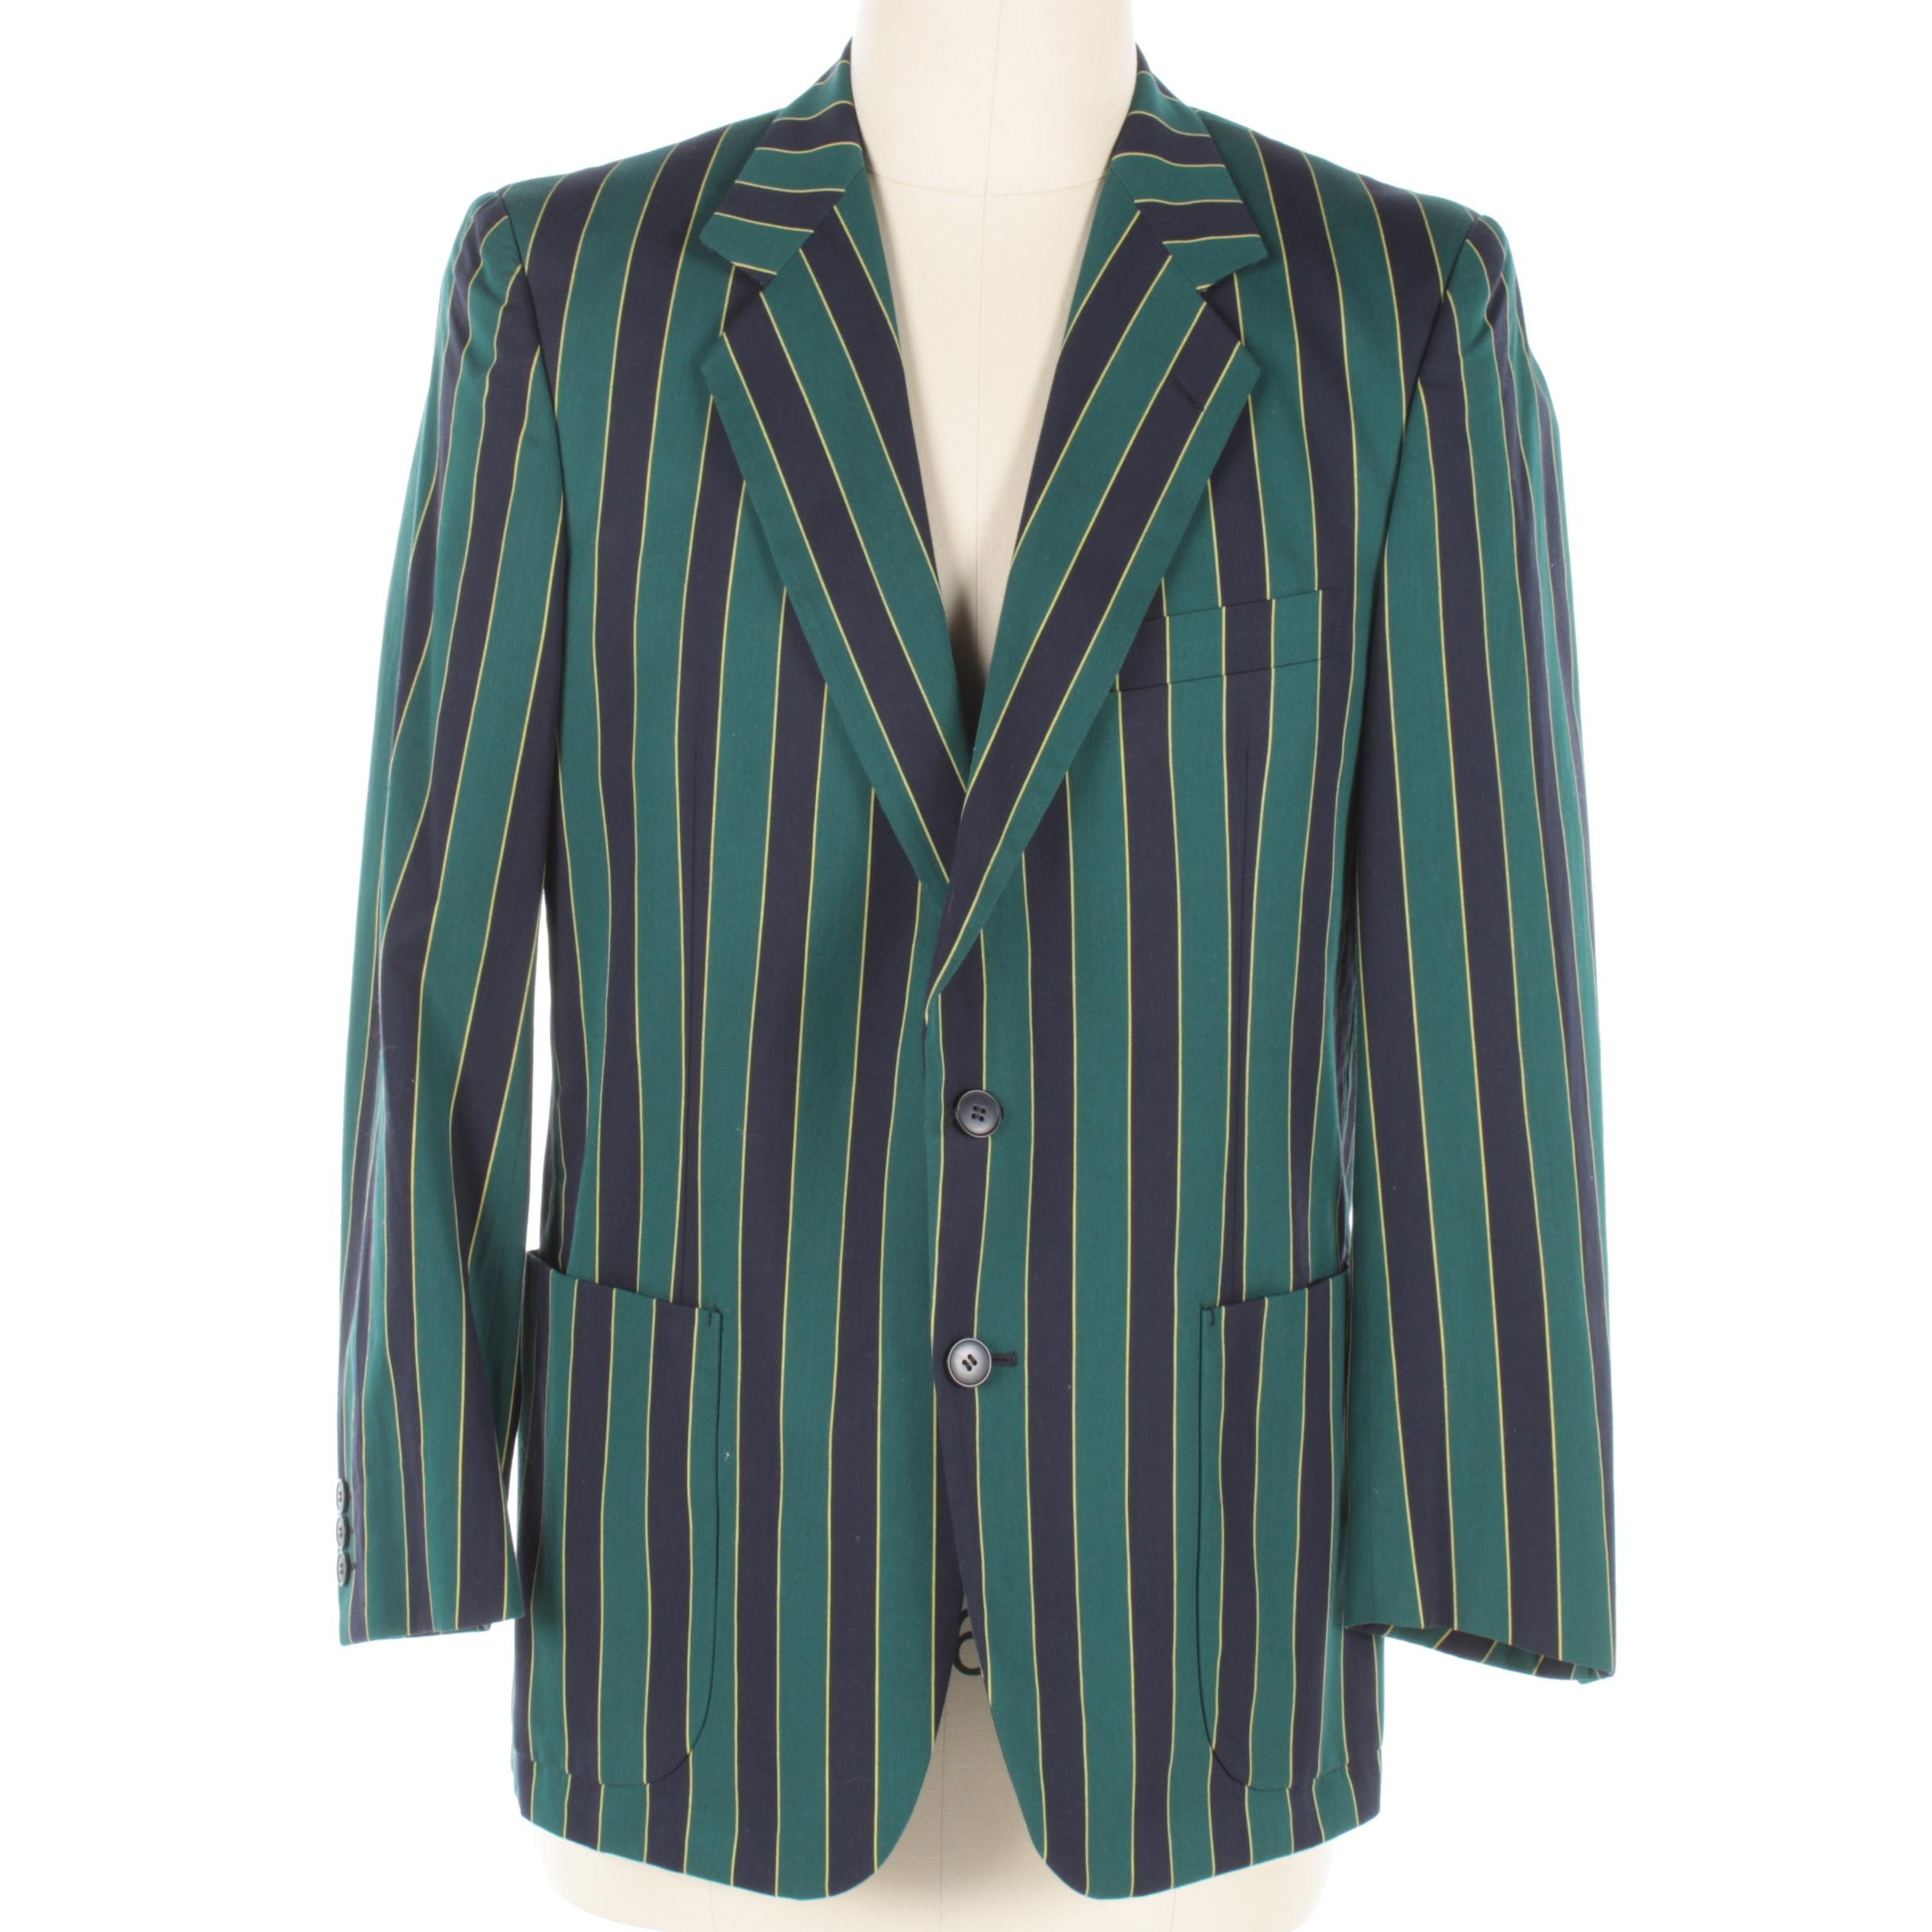 Men's Vintage Harrods Striped Cotton Blazer